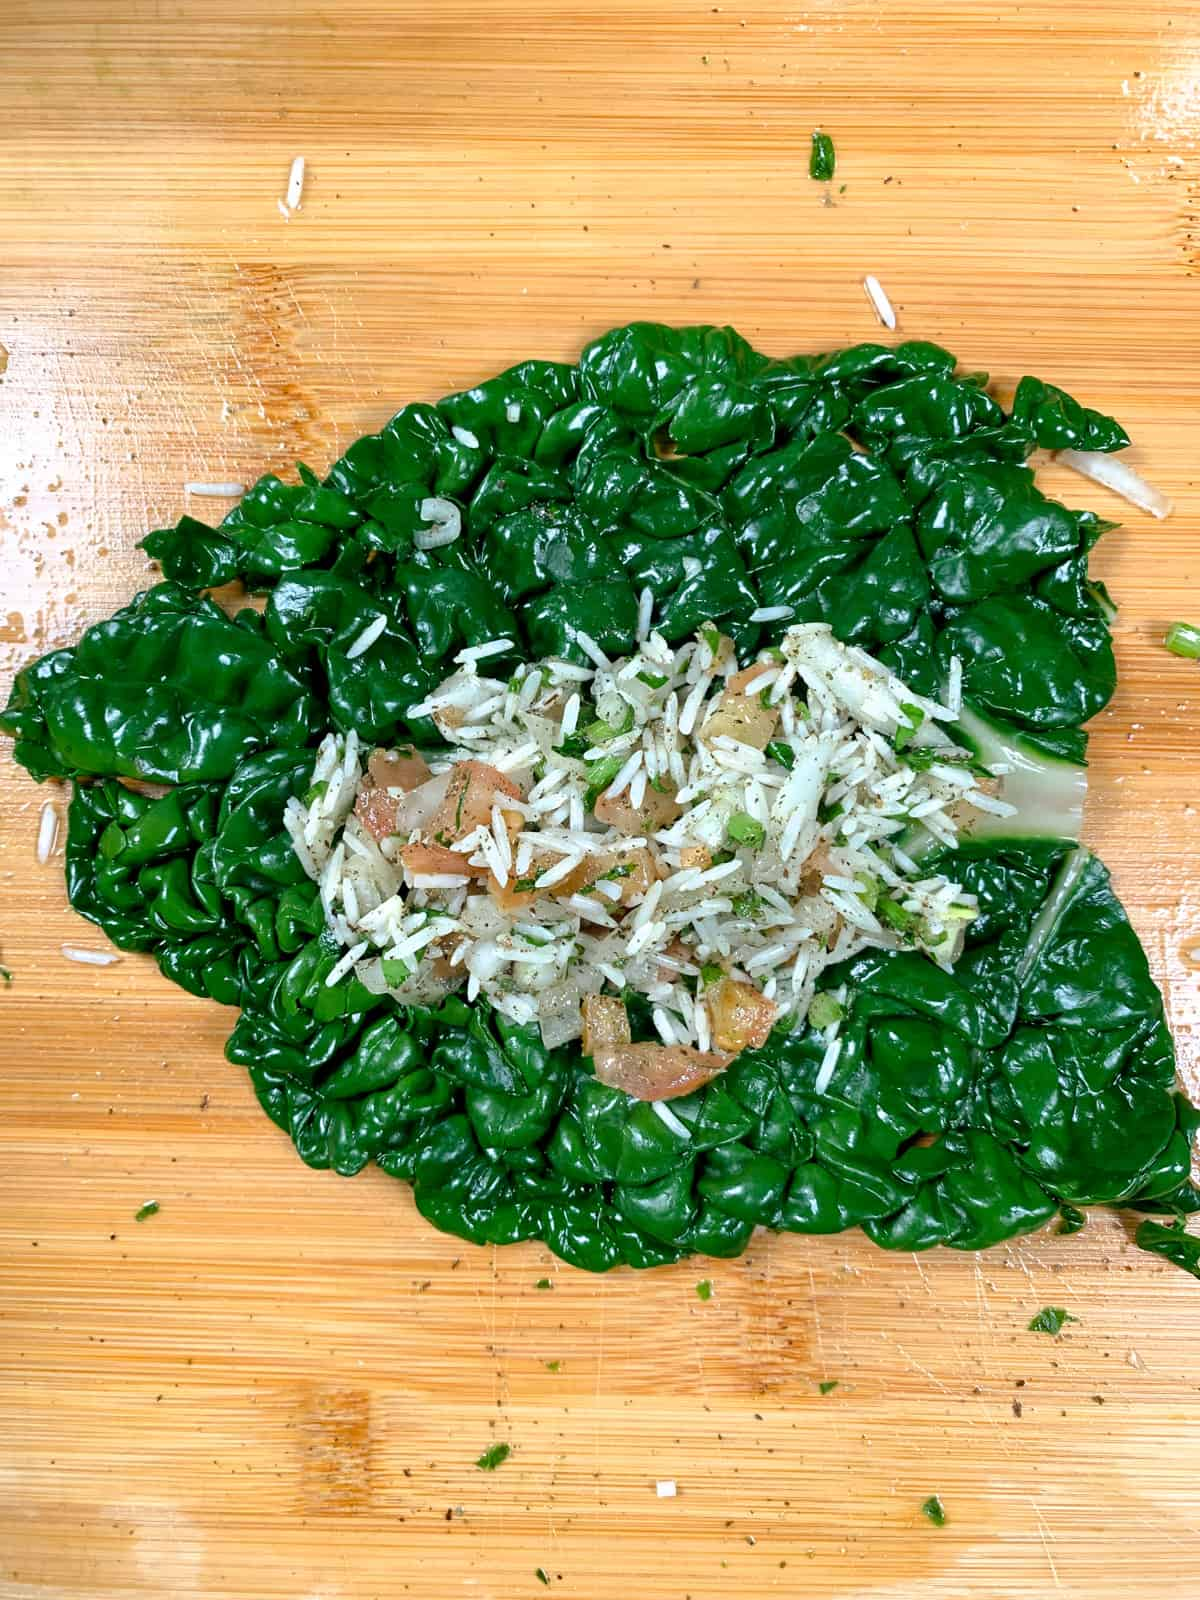 chard leaf with rice filling in the middle